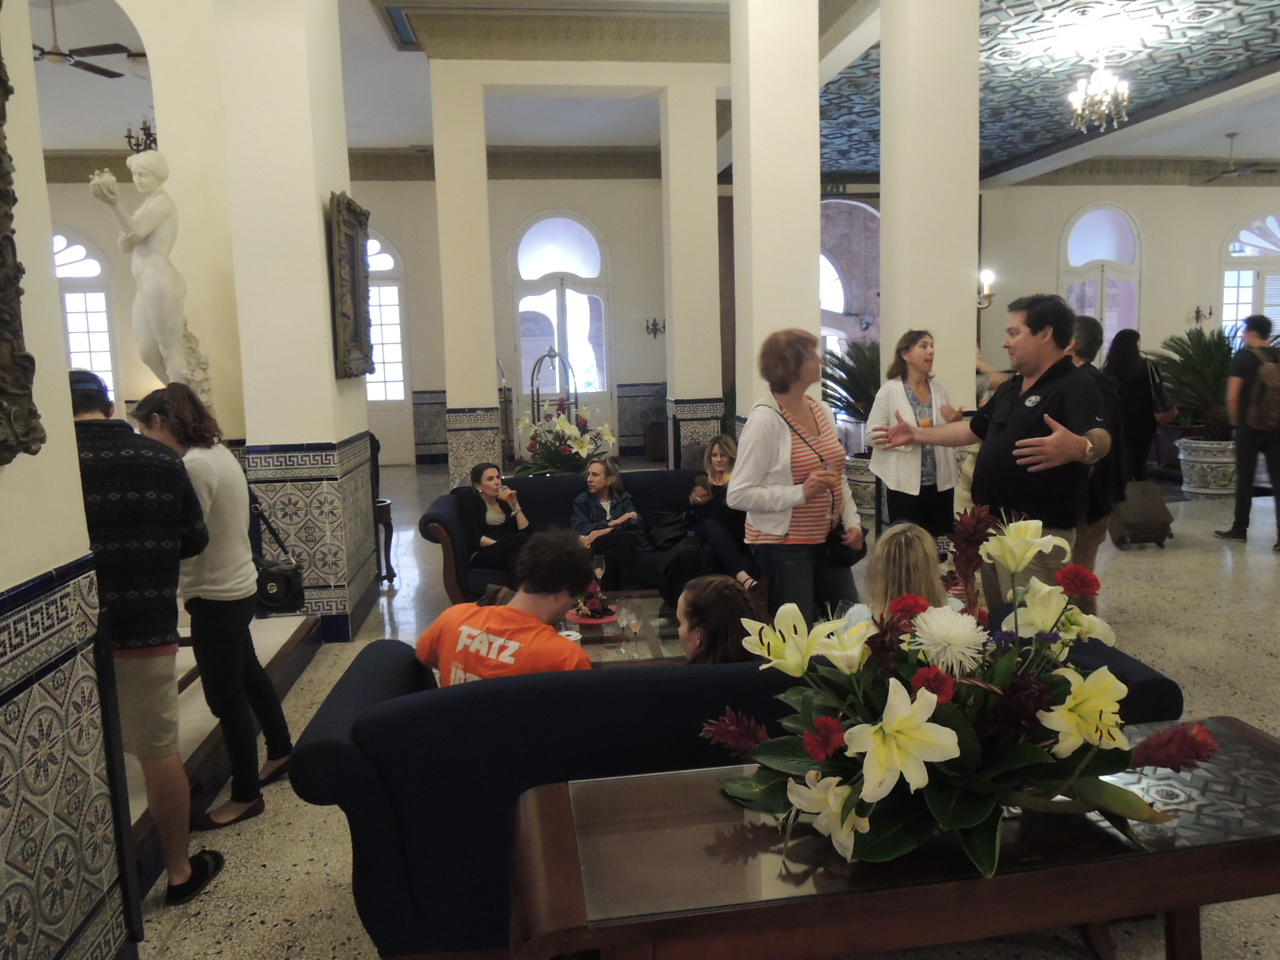 Another view of the hotel Sevilla lobby while check-in was proceeding.